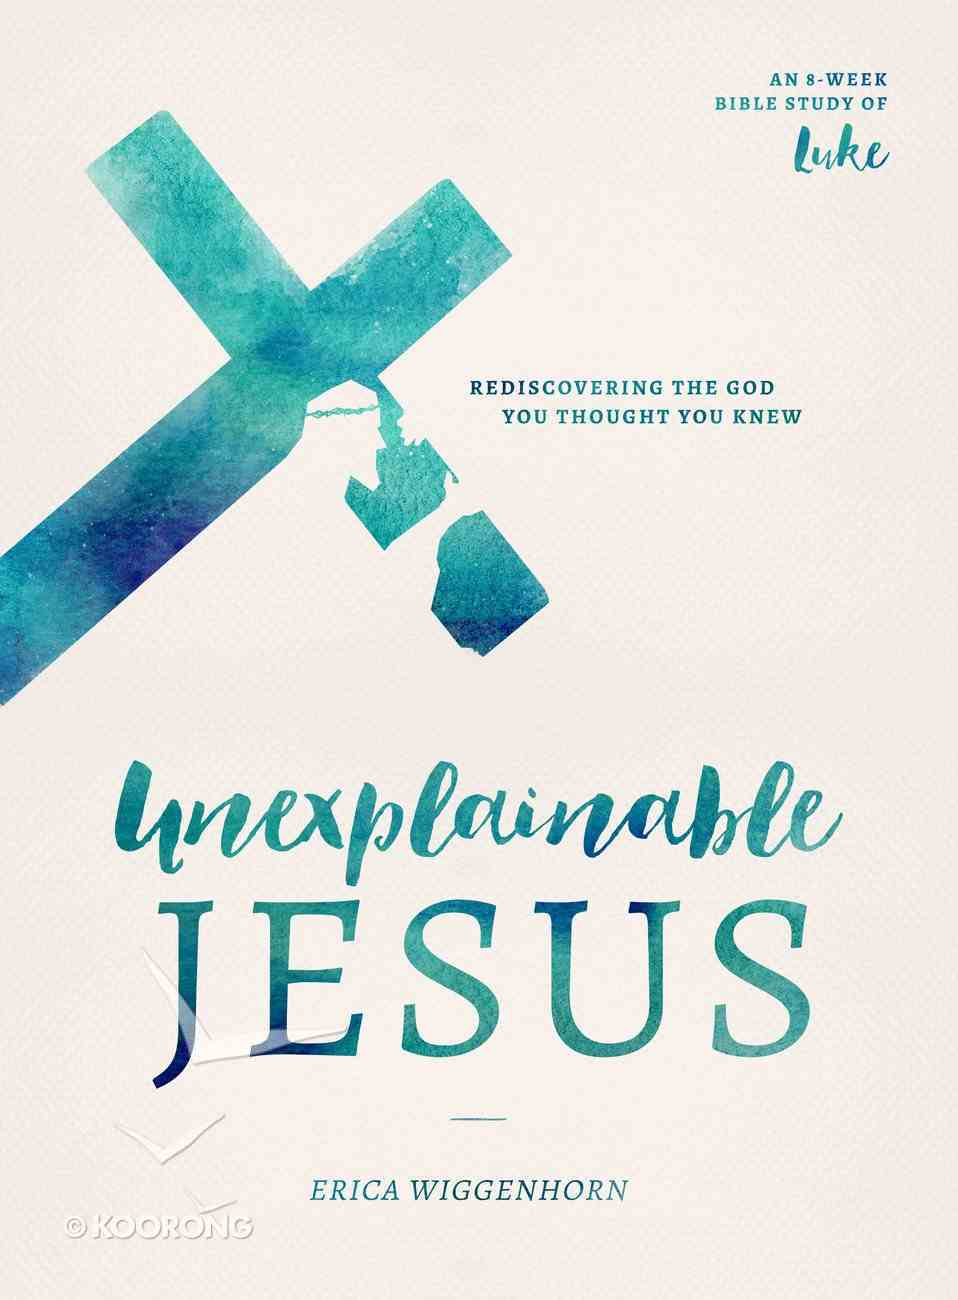 Unexplainable Jesus Bible Study Book): Rediscovering the God You Thought You Knew (8 Week Study of Luke) Paperback